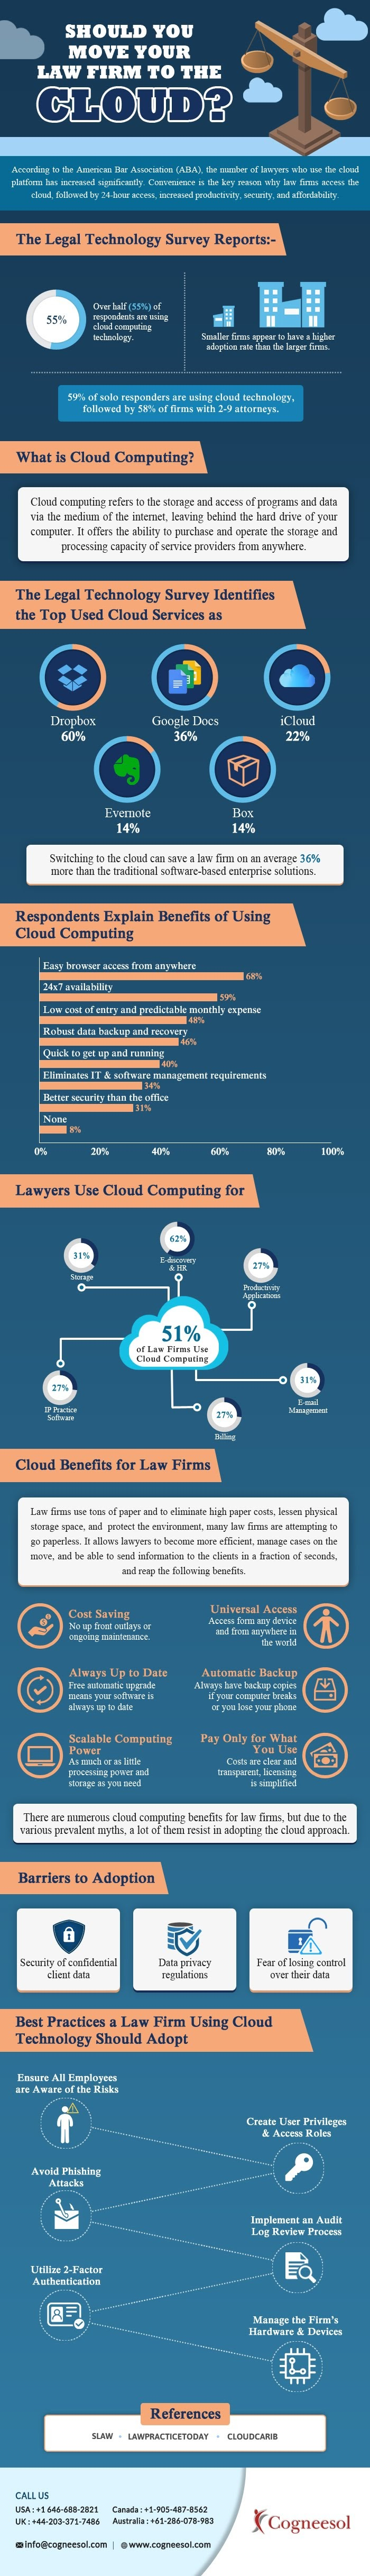 Should You Move Your Law Firm to the Cloud? #infographic